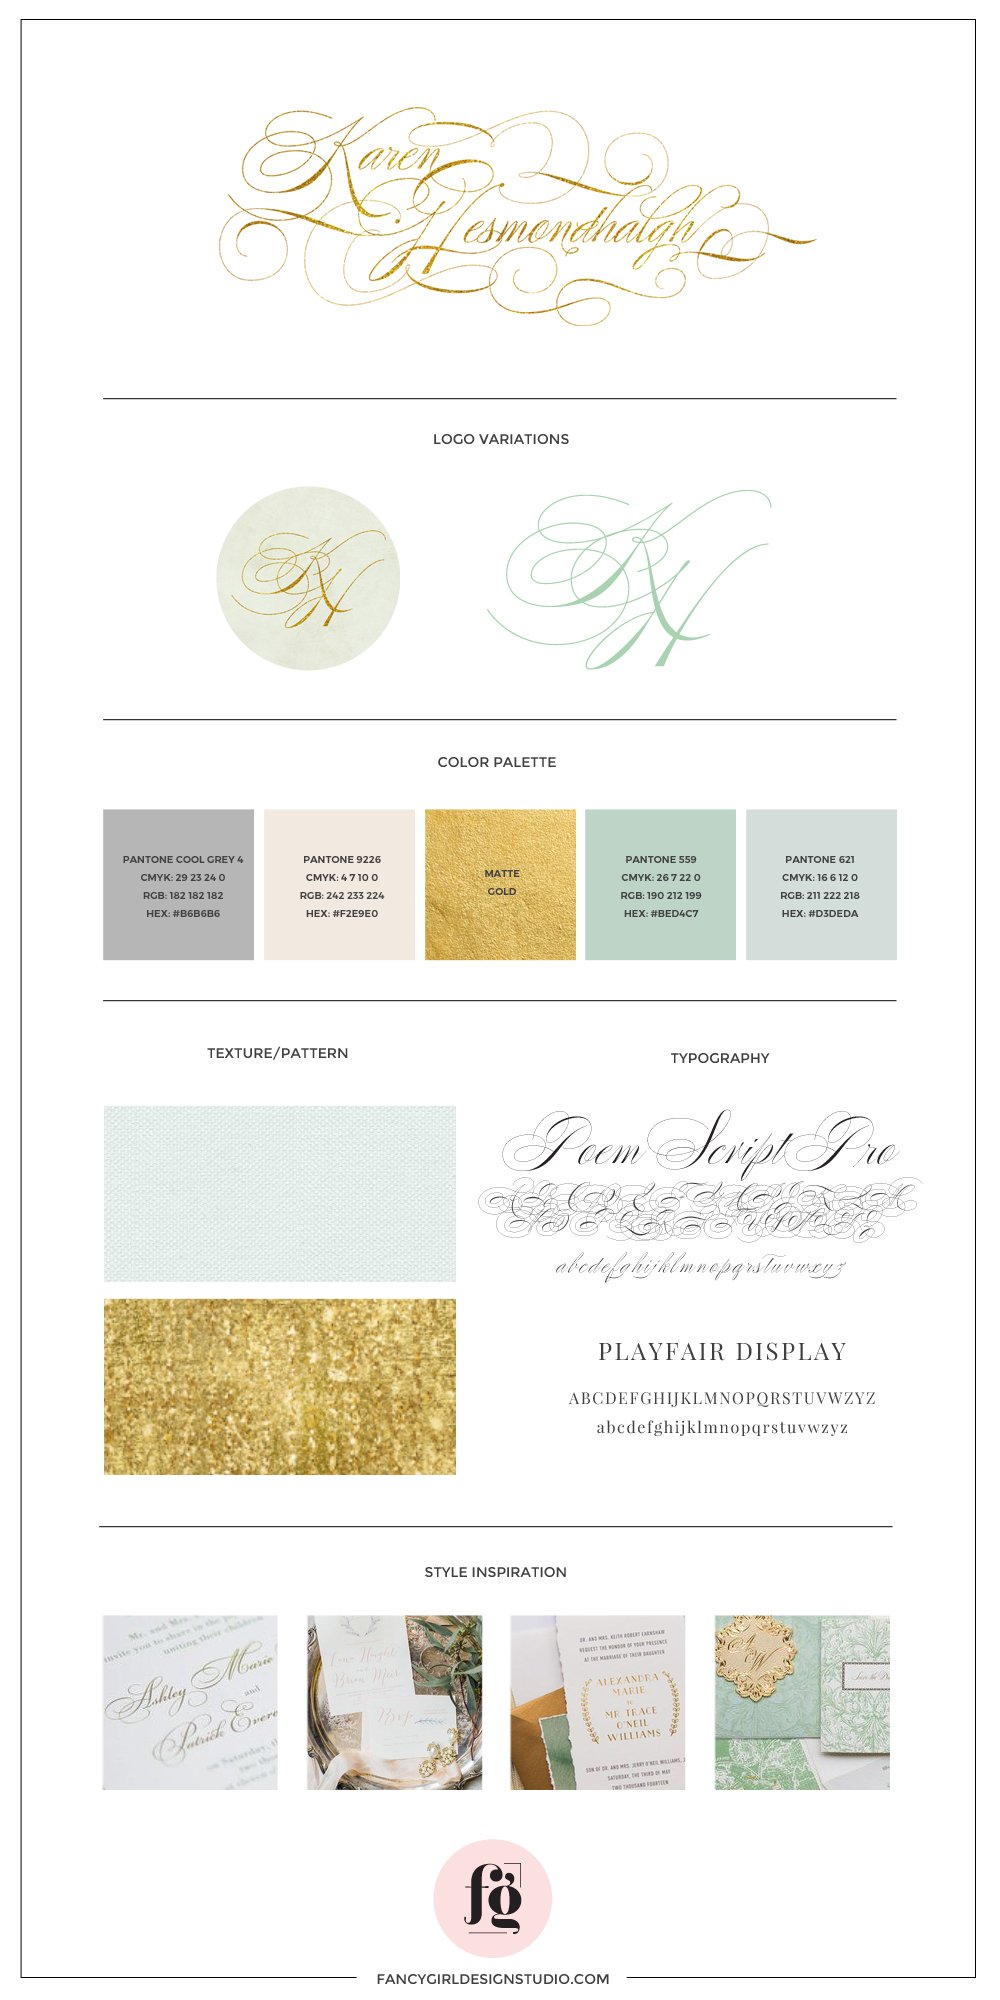 Brand guide for KAREN HESMONDHALGH by Fancy Girl Design Studio